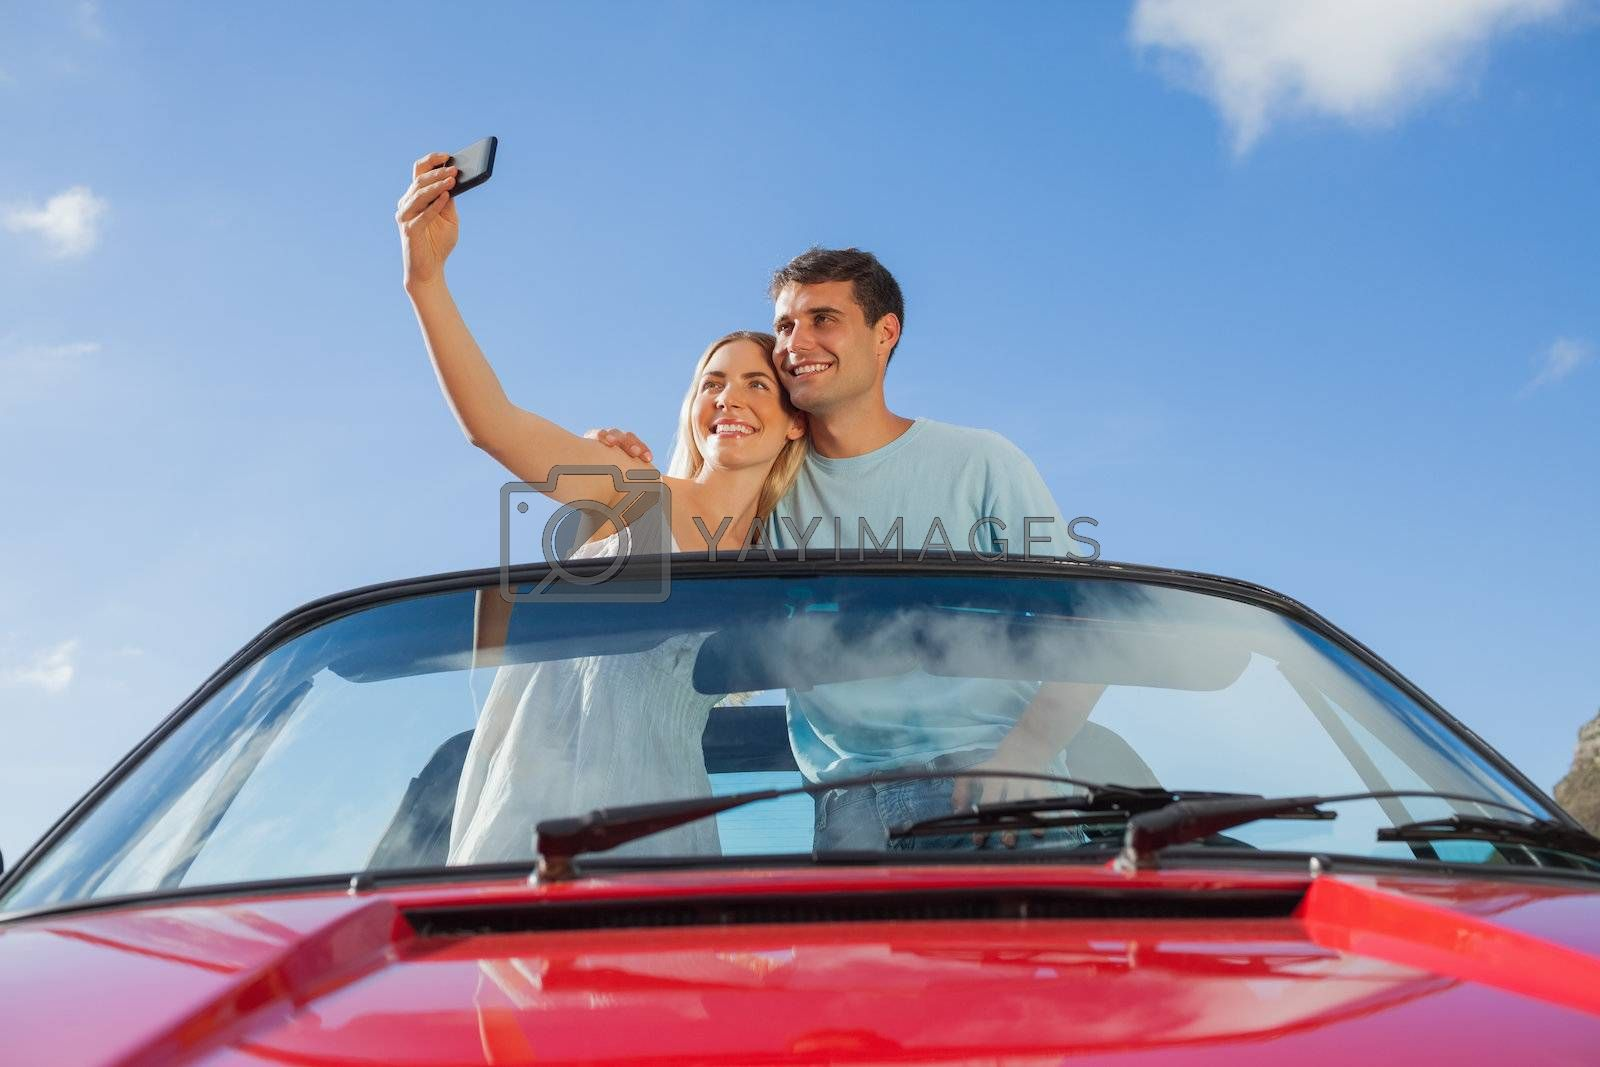 Cheerful couple standing in red cabriolet taking picture by Wavebreakmedia